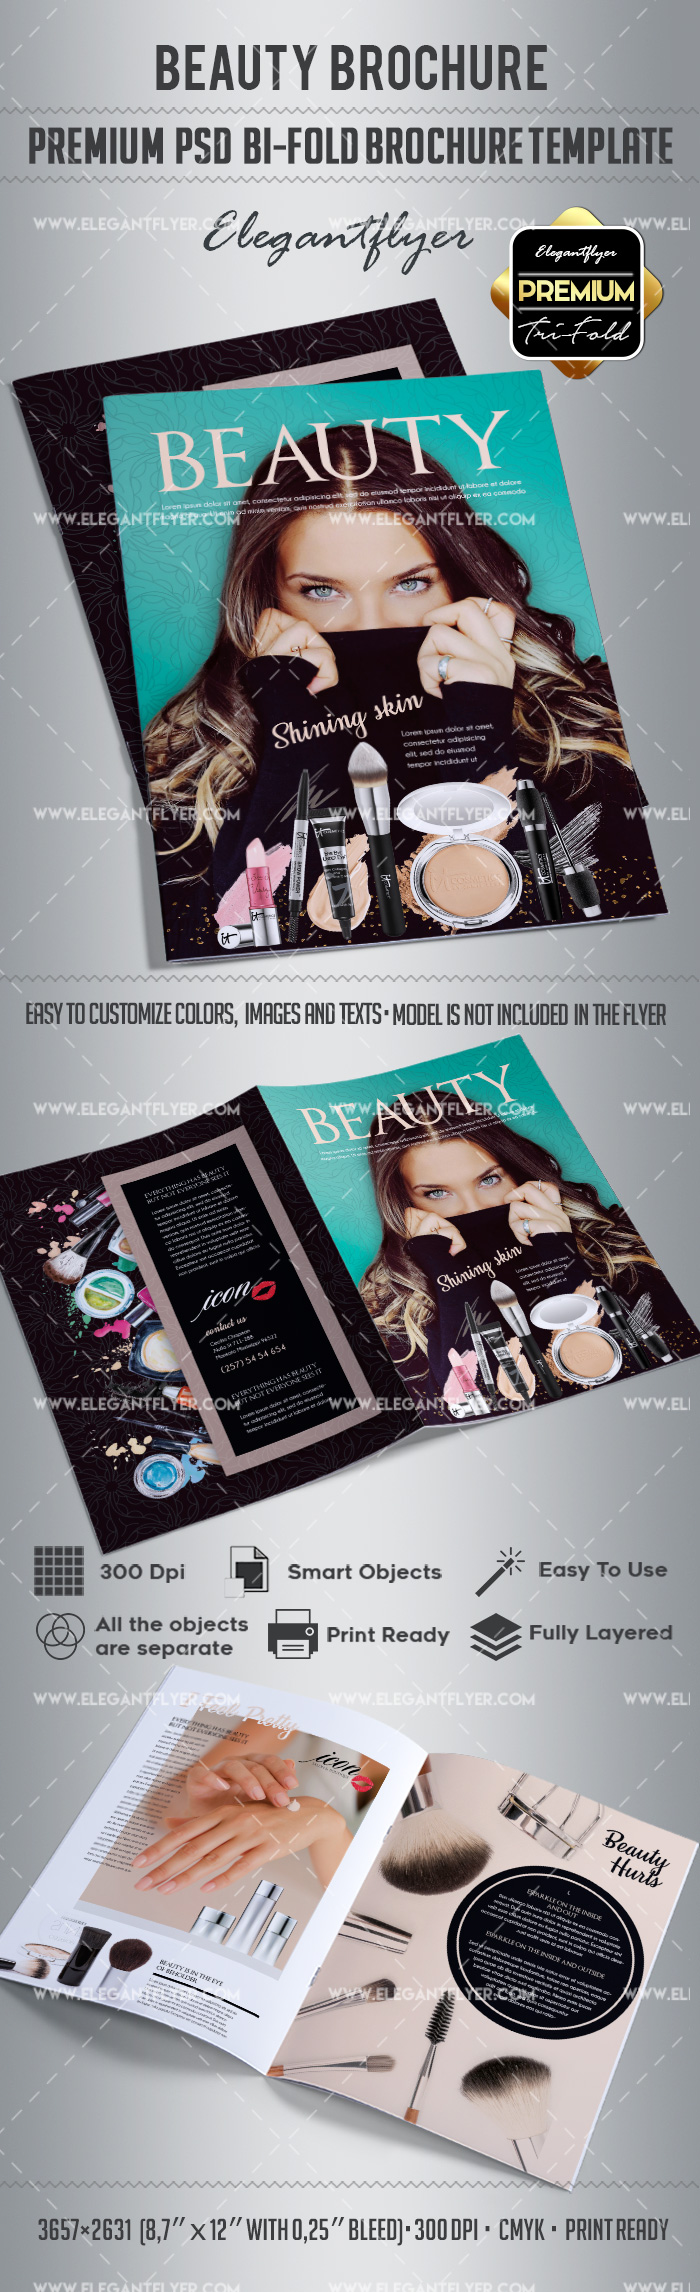 Beauty – Bi-Fold Brochure PSD Template